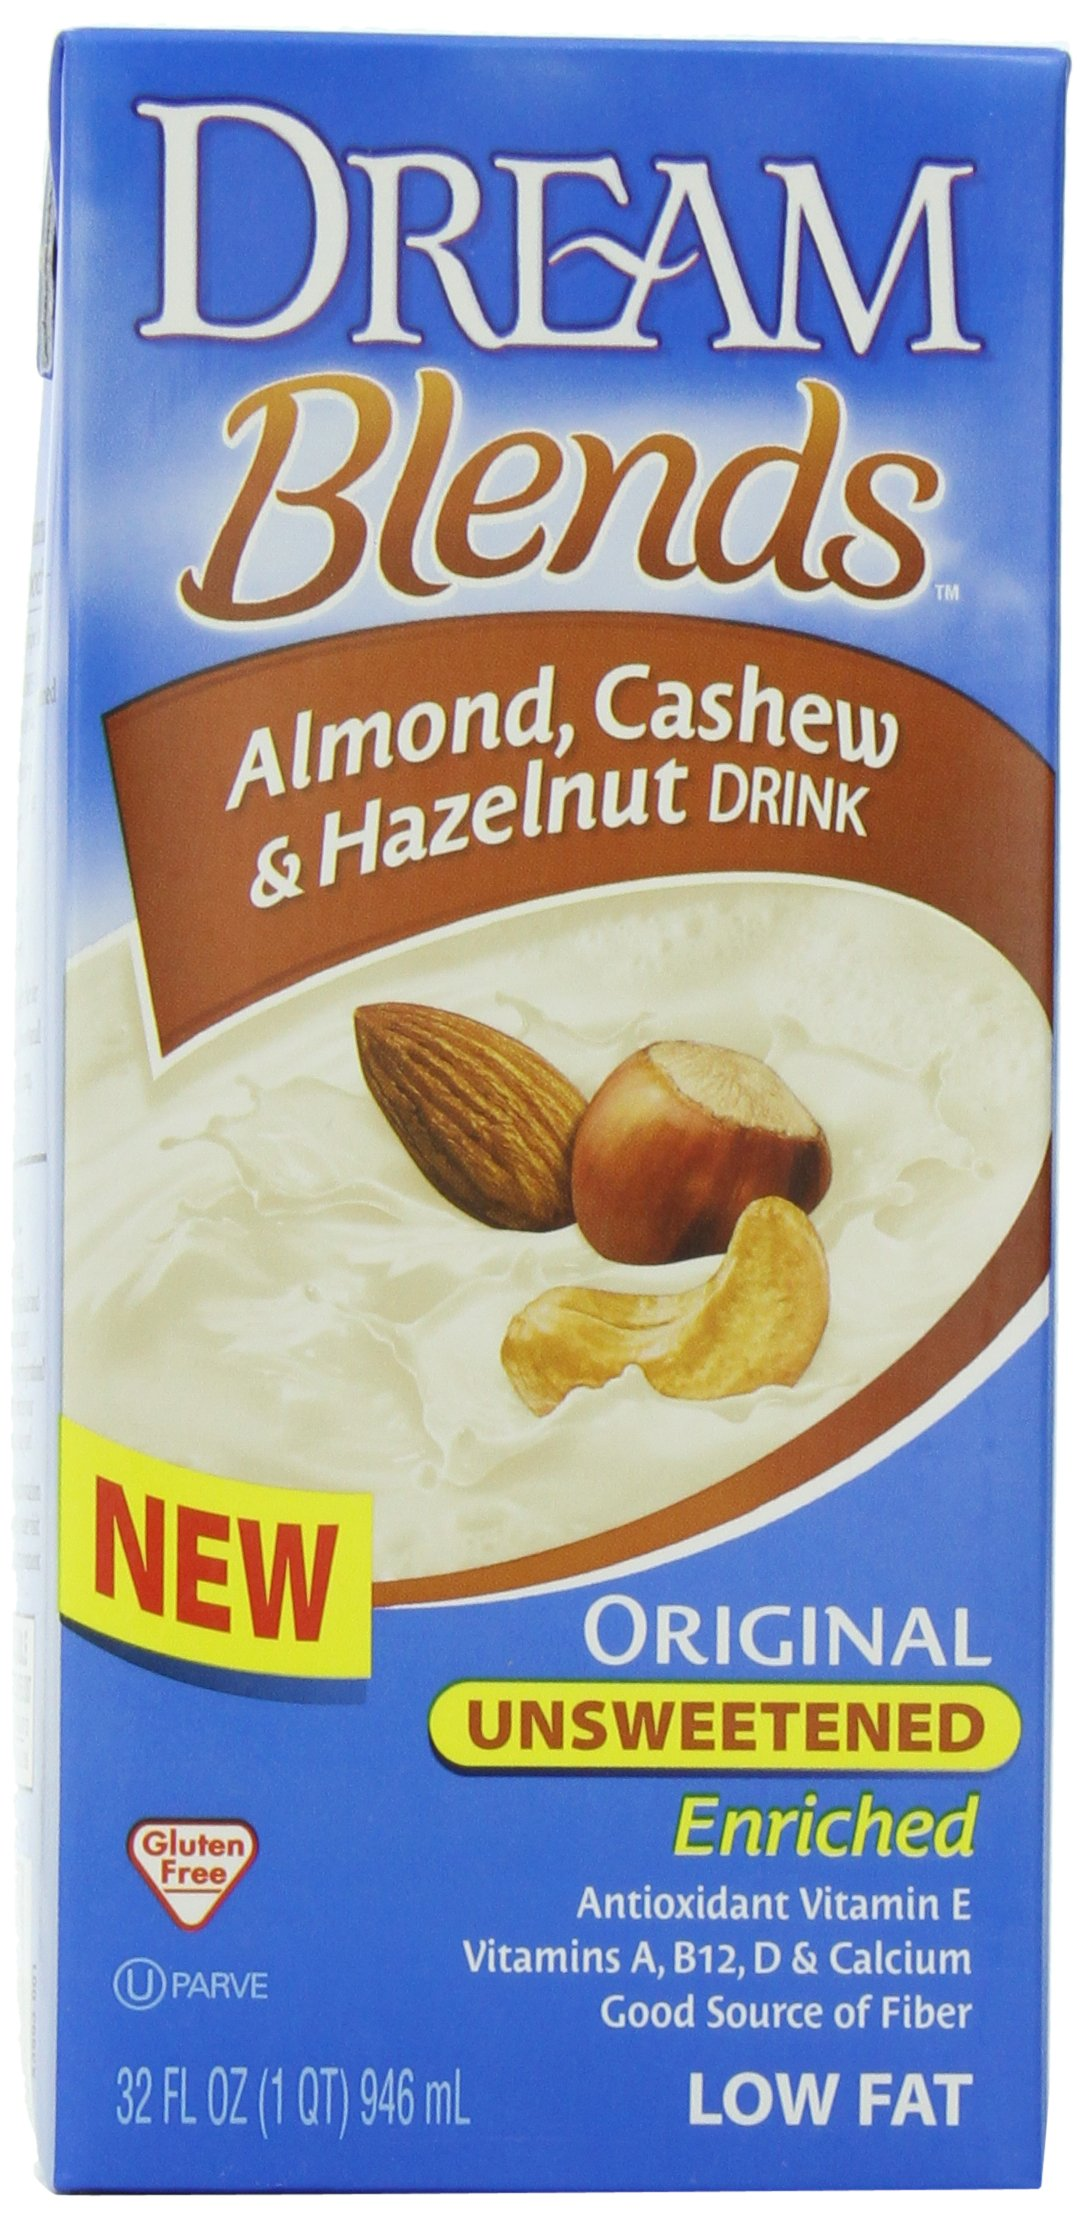 Dream Blends Unsweetened Enriched Original Almond, Cashew and Hazelnut Drink, 32 Ounce Aseptic Boxes (Pack of 6) by Dream Blends